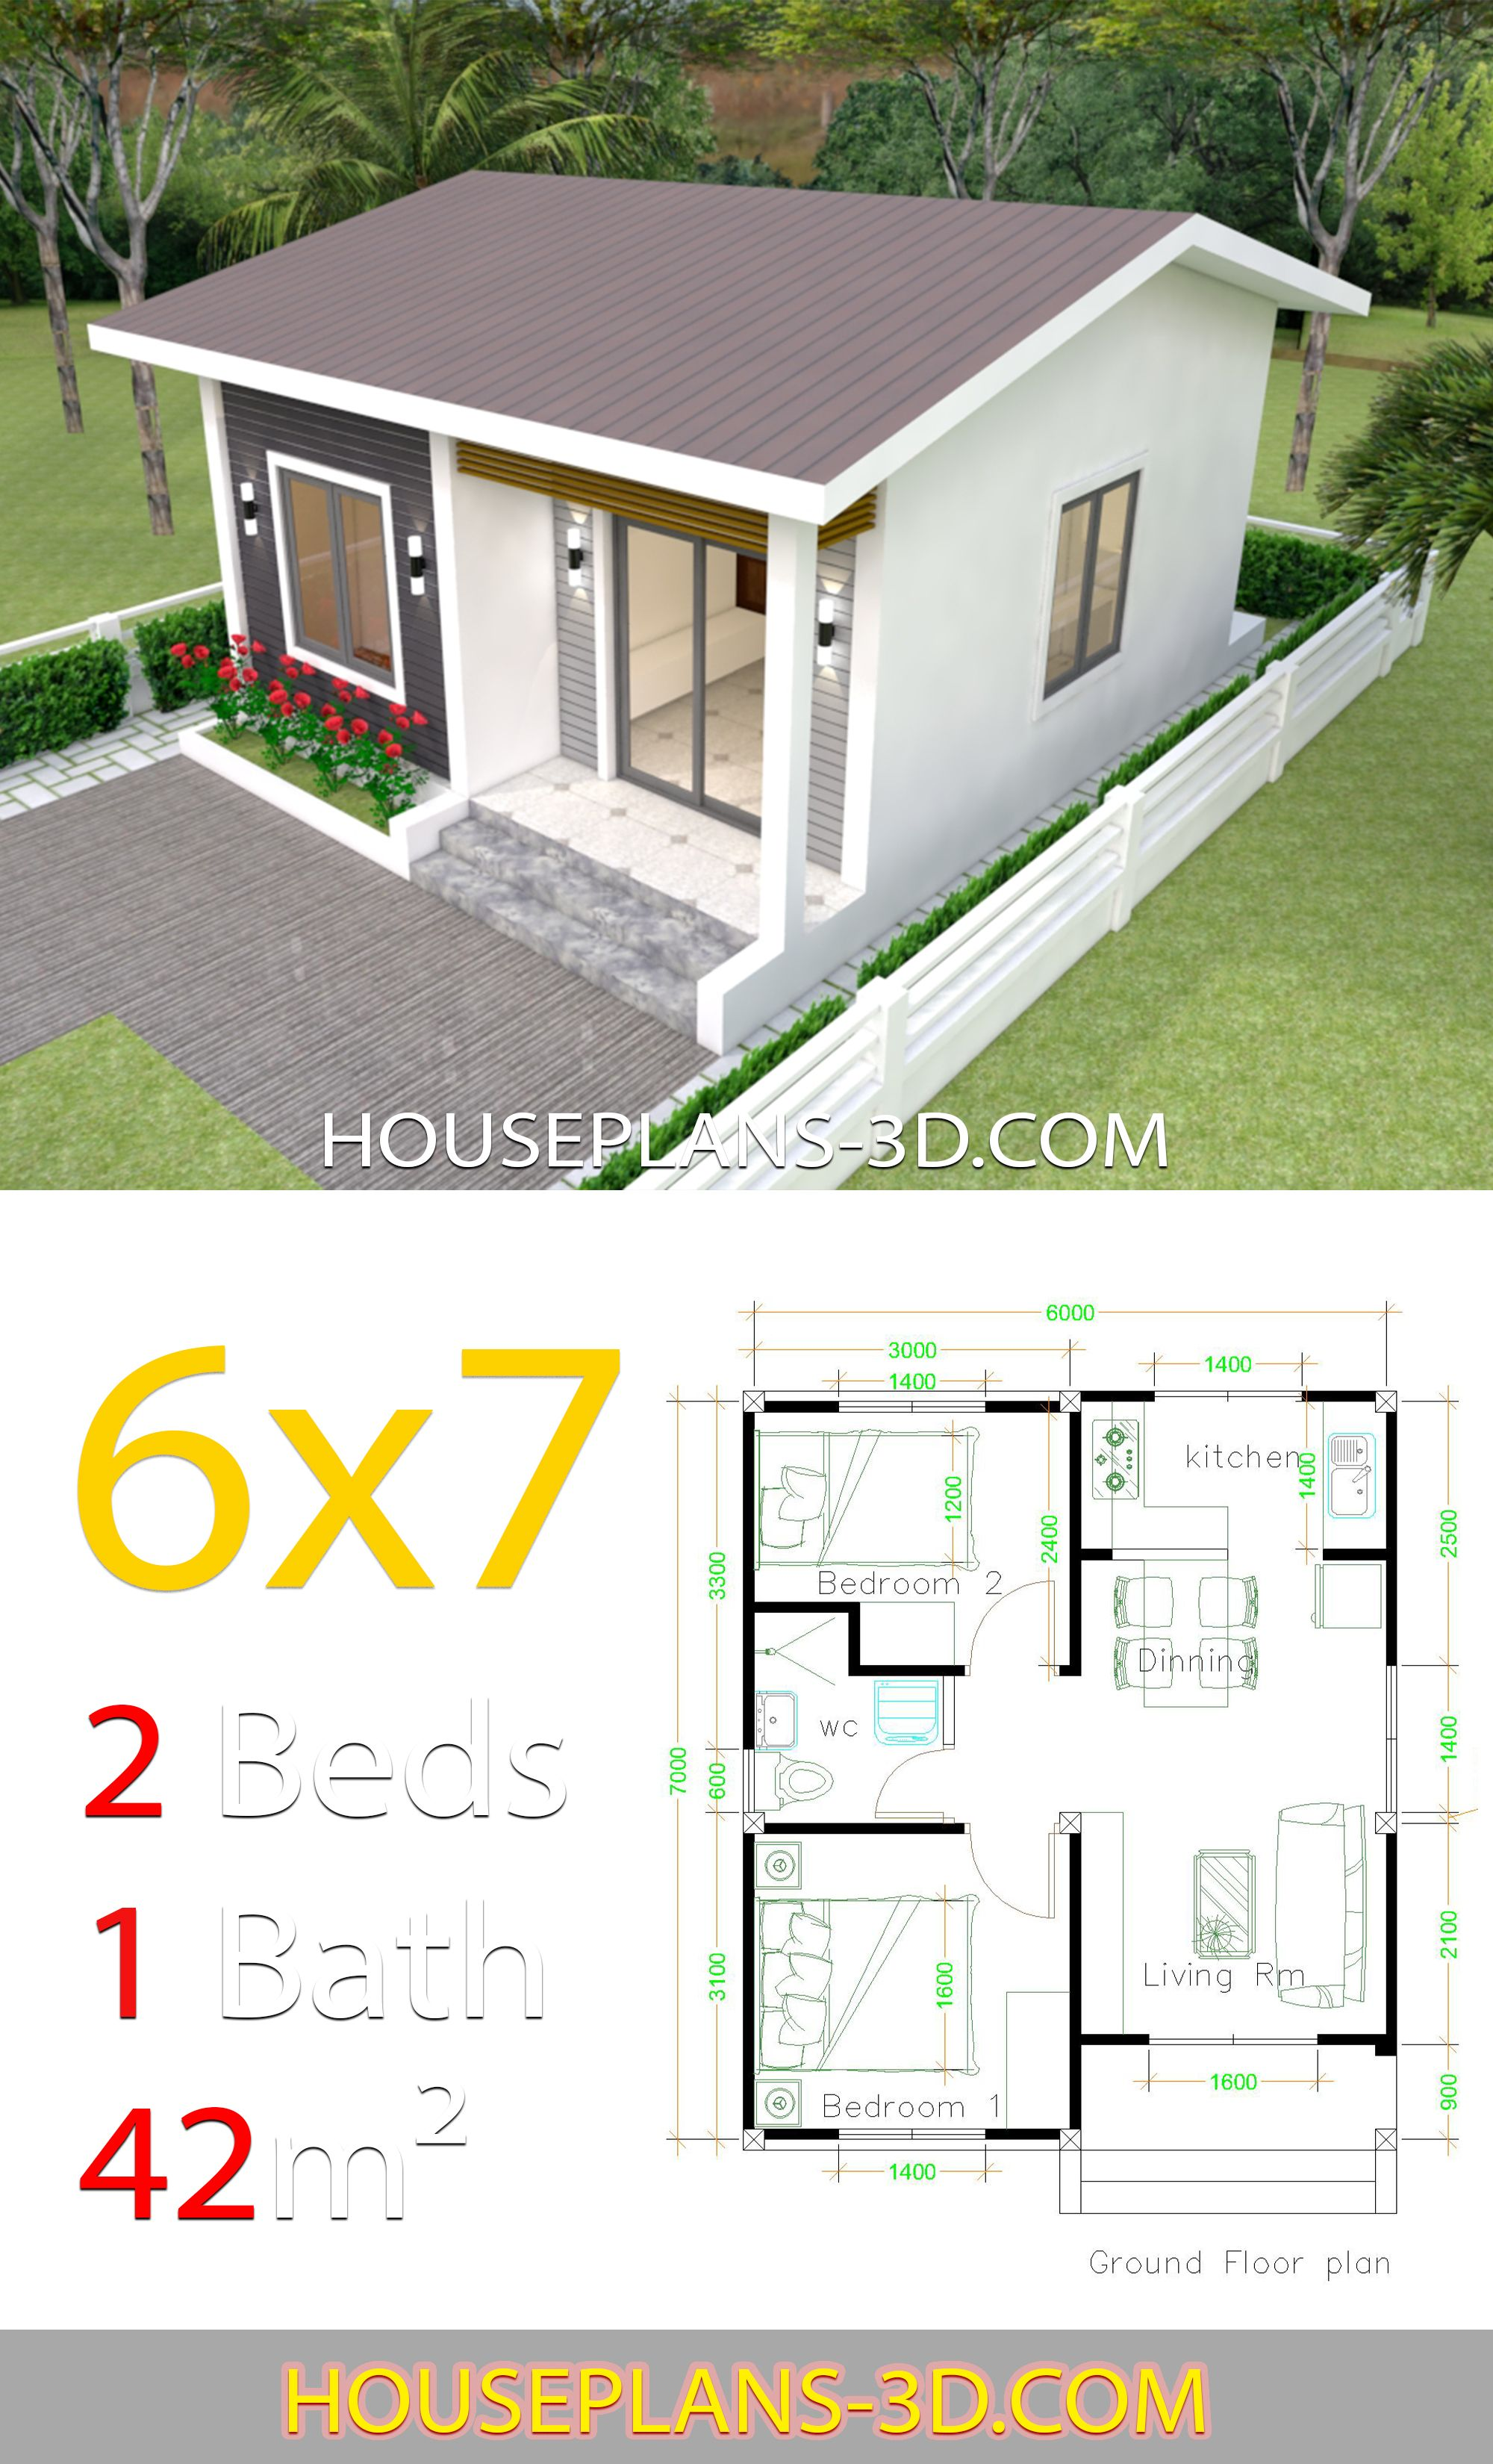 House Design 6x7 With 2 Bedrooms House Plans 3d In 2020 Sims House Plans Small House Design Small House Design Plans